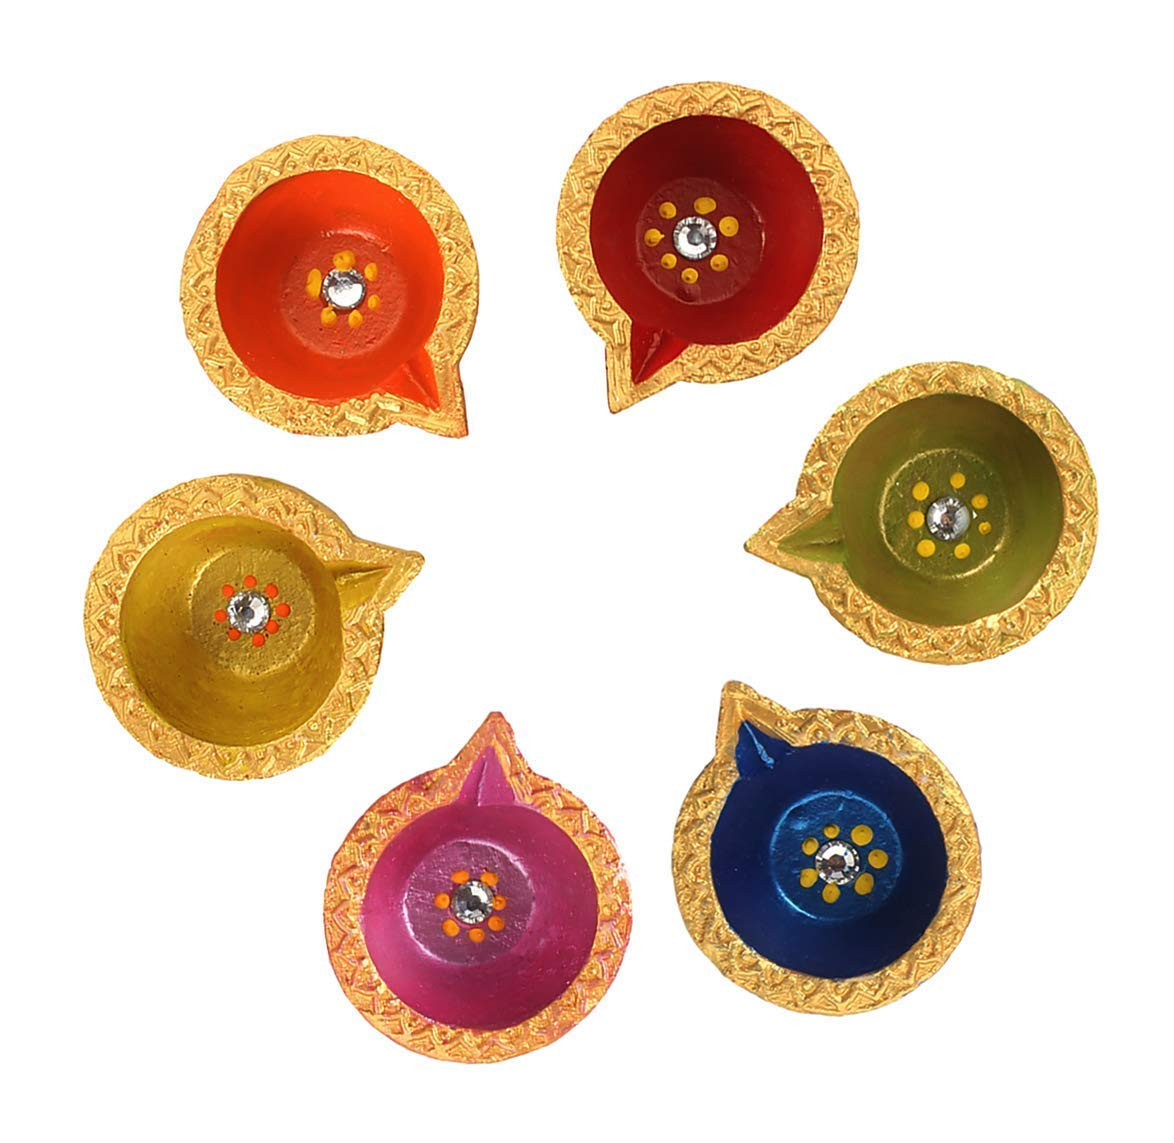 Store Indya, Handmade Earthen Clay Terracotta Decorative Diwali Diyas Oil Lamps with Rhinestone (Jewel for Pooja) - Puja Set of 6 (Multicolor 3)